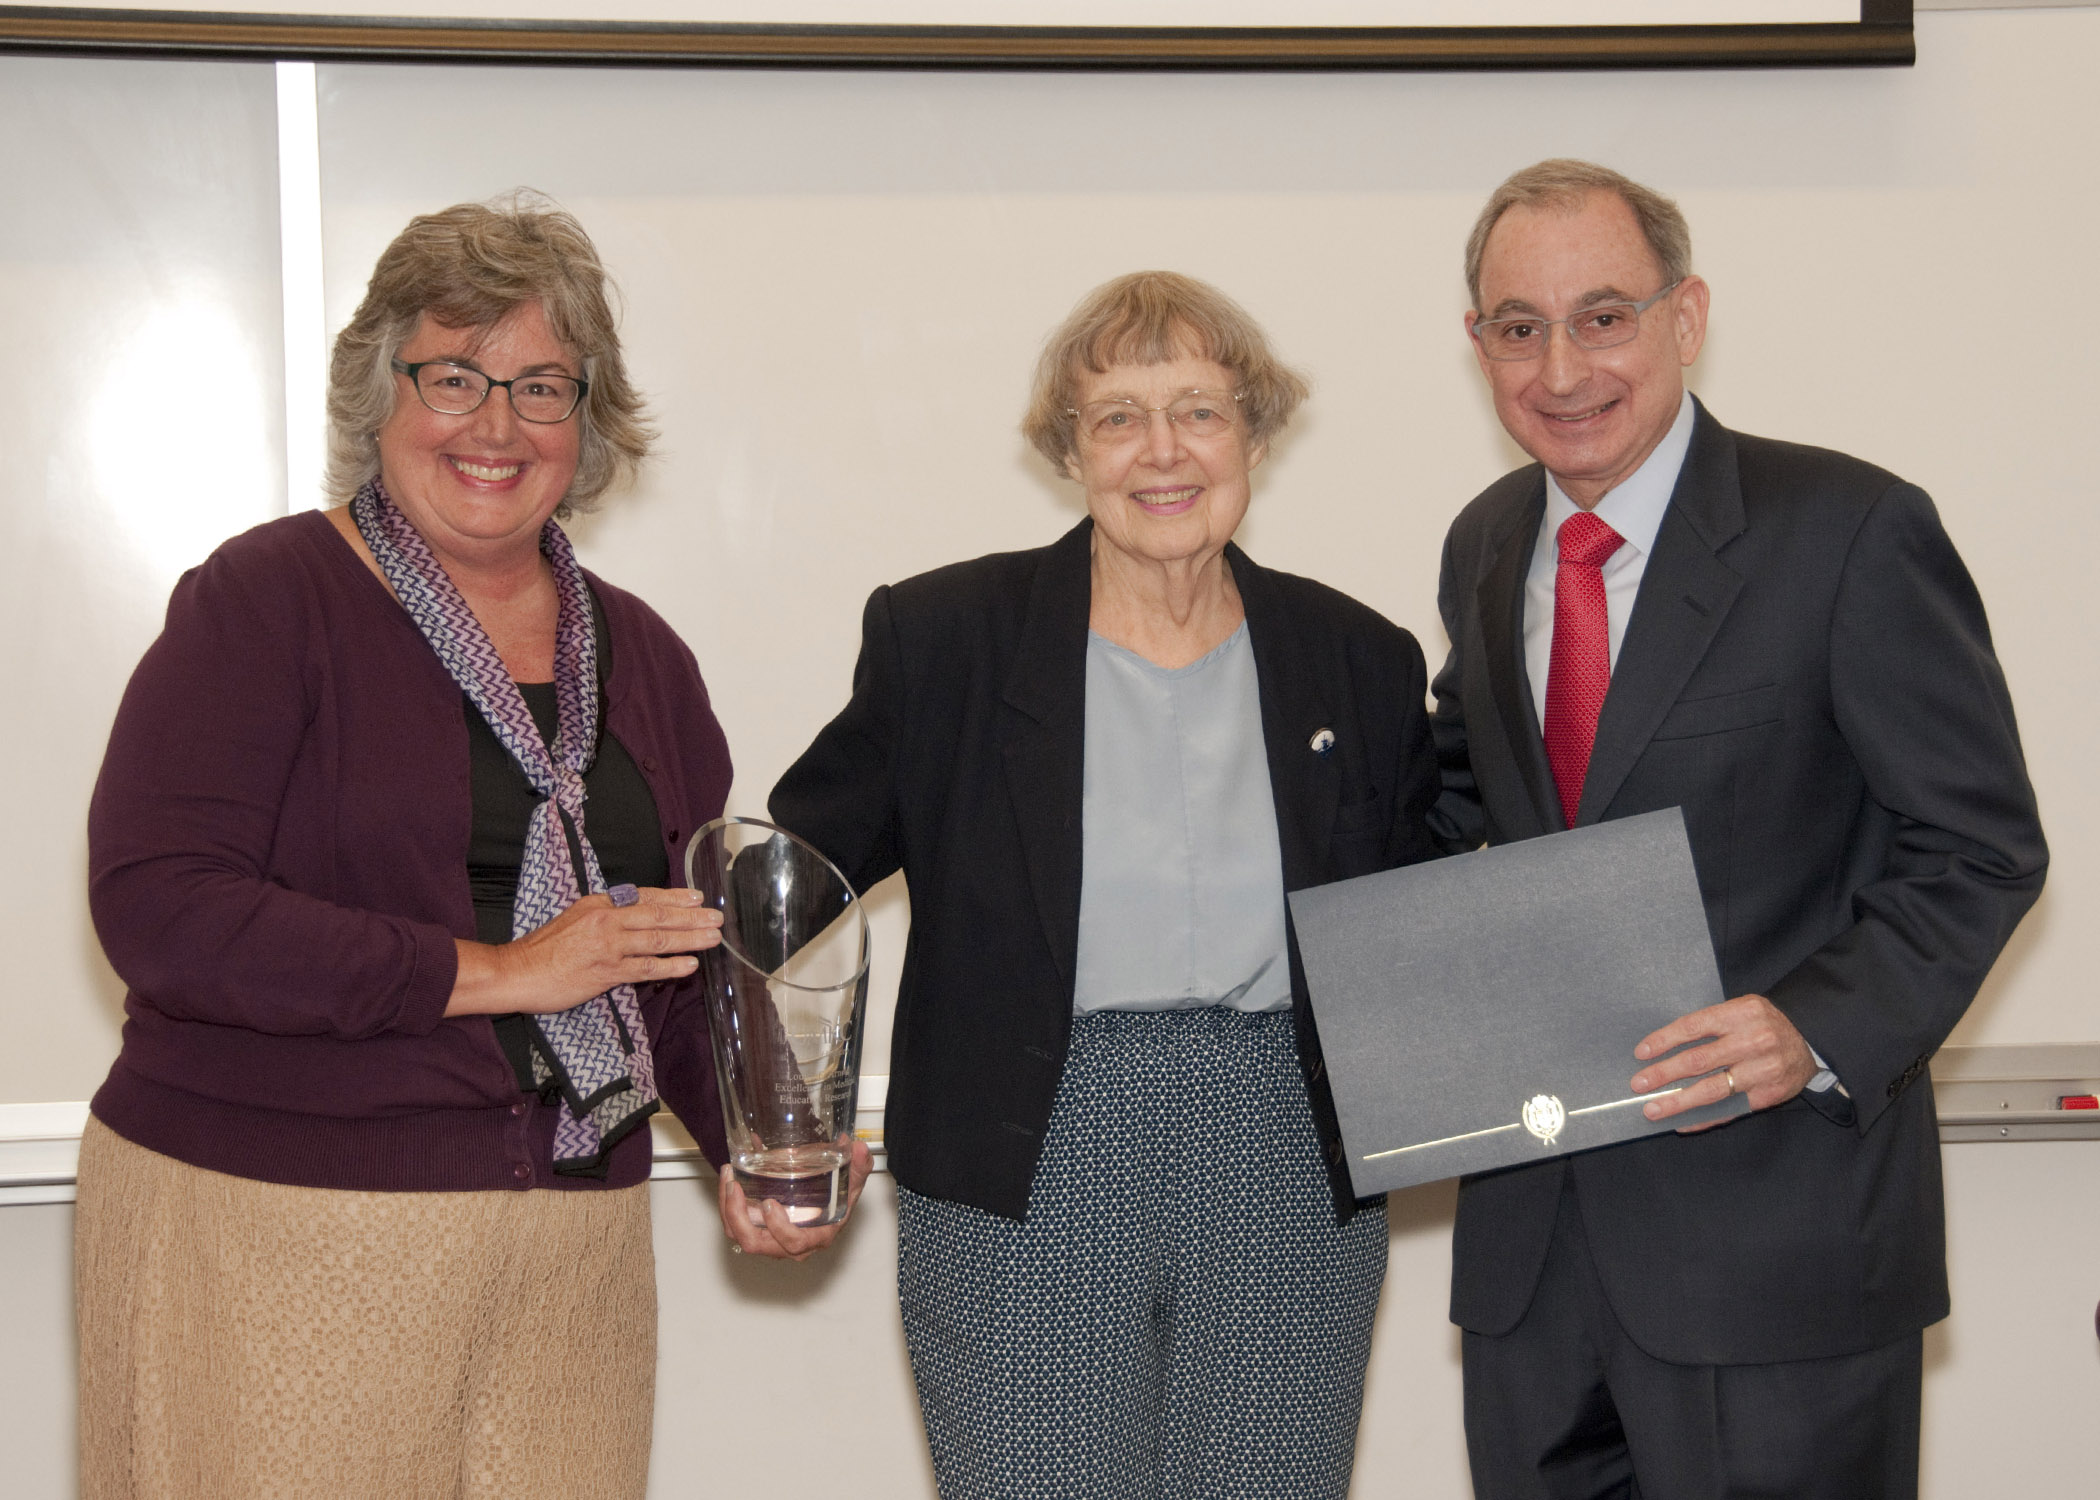 Louise Arnold, Ph.D., (middle) former associate dean for medical education and research, received the inaugural Louis E. Arnold Excellence in Medical Education and Research Award from Rebecca Pauly, M.D., F.A.C.P., associate dean for faculty development, and School of Medicine Dean Steven Kanter, M.D.